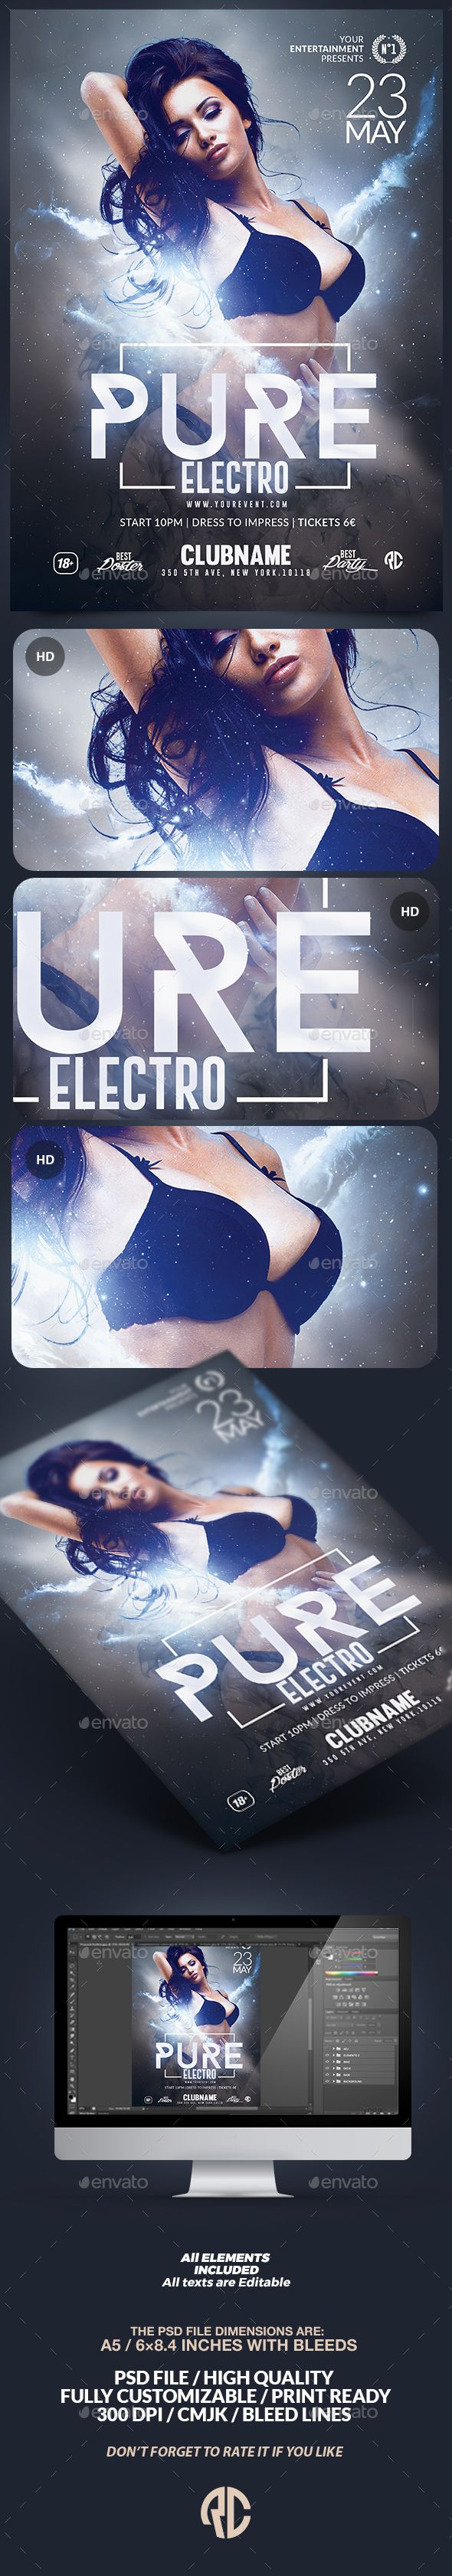 Pure Electro Flyer | Psd Template DOWNOAD Available on #envatomarket By @romecreation  #flyer #electro #house #flyers #template #psd #party #romecreation